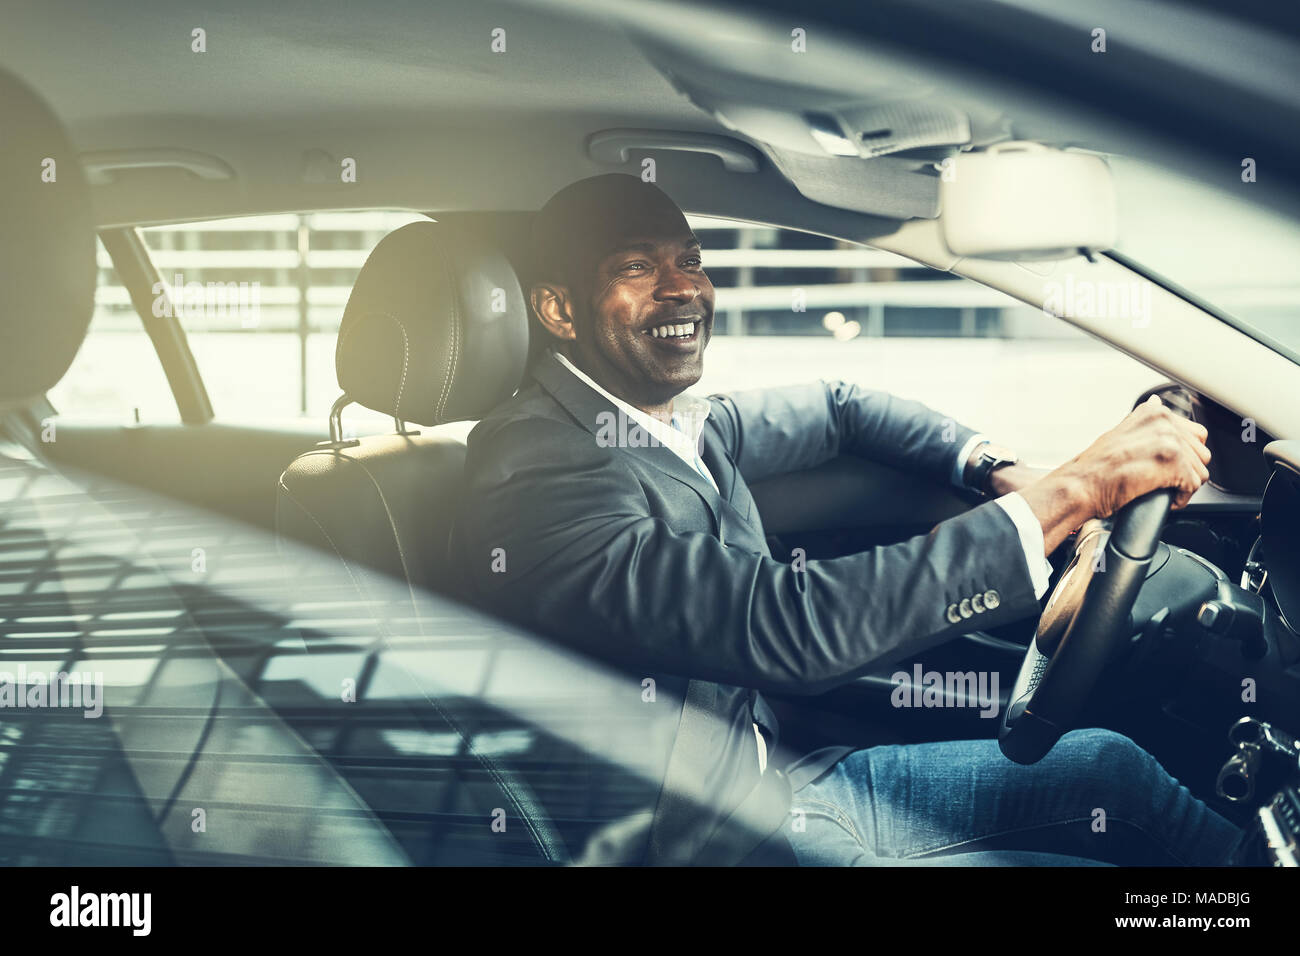 African businessman wearing a blazer and smiling while driving his car during his morning commute through the city - Stock Image